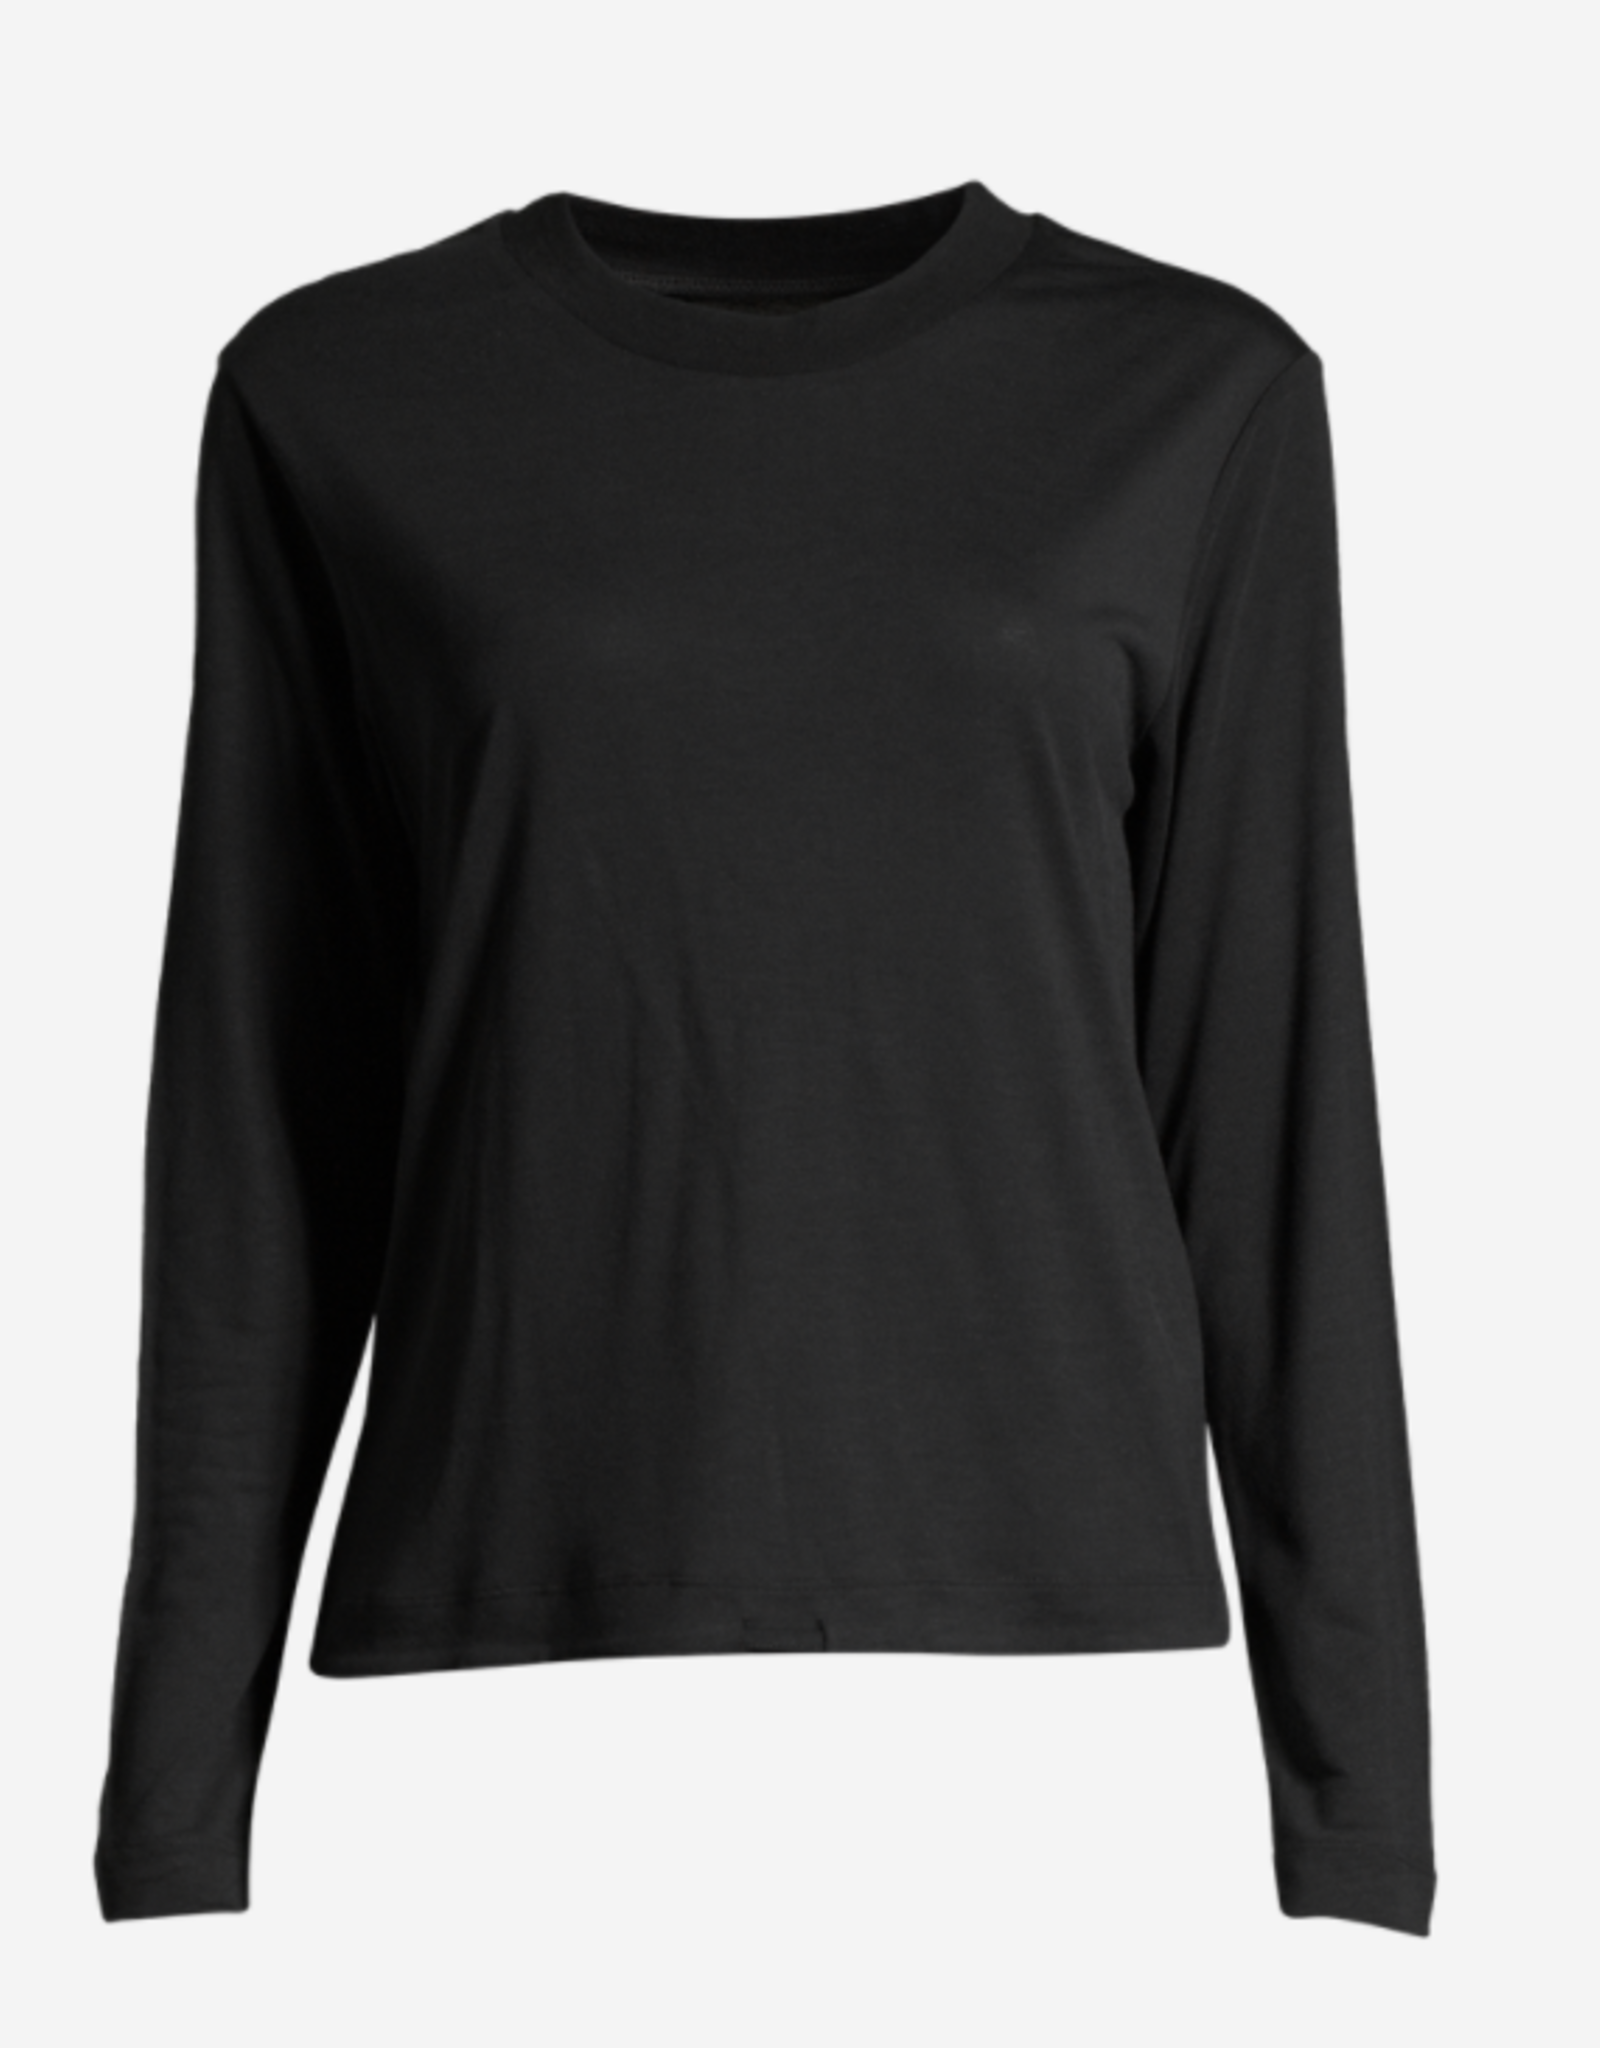 Casall Ease Crew neck dames (ref 20557)